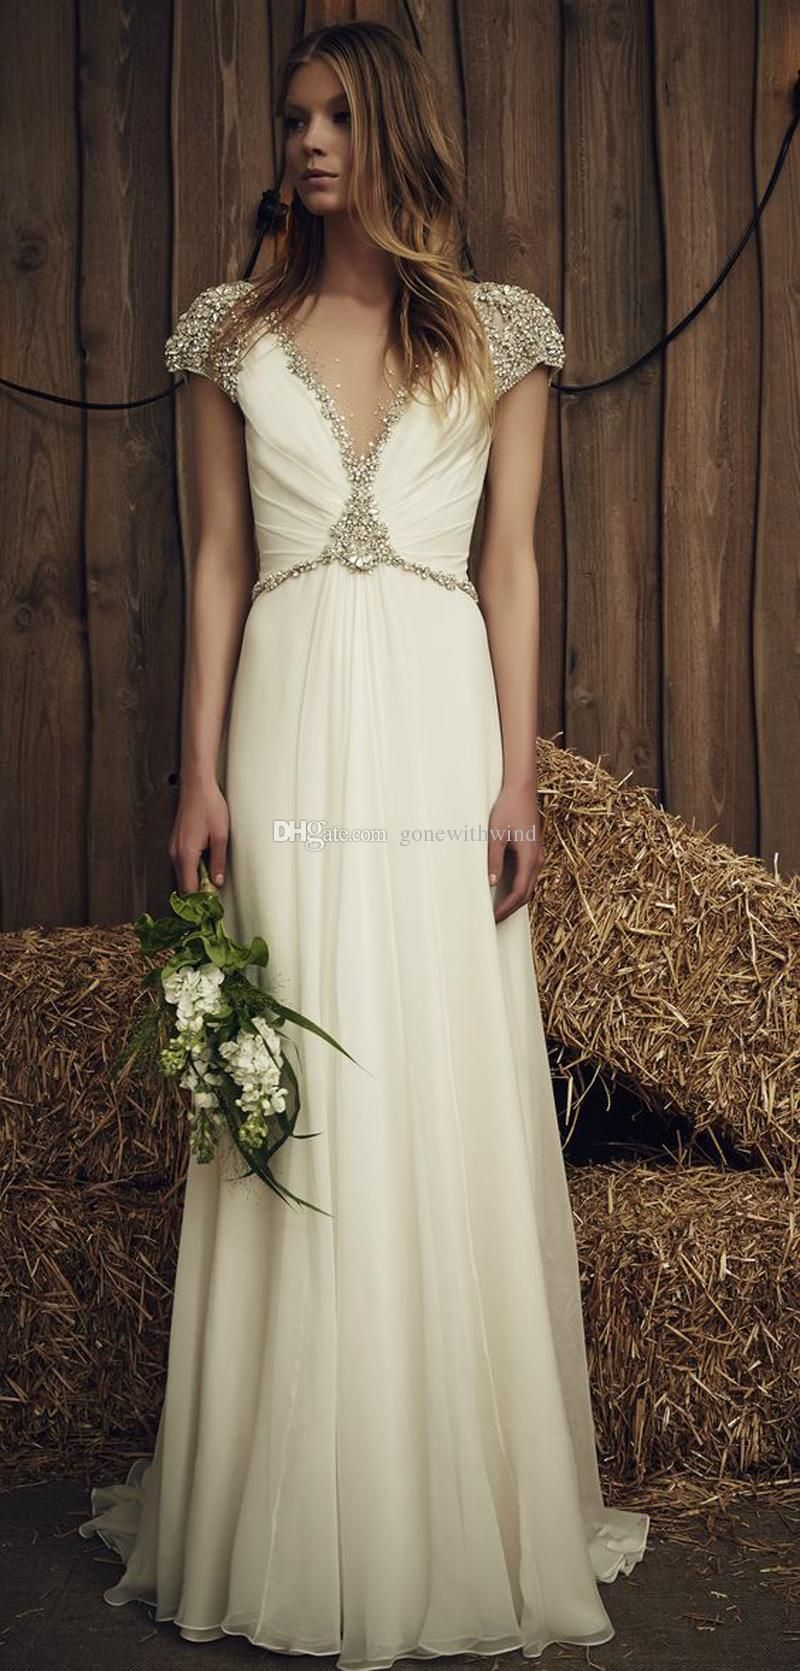 Fancy Crystals Beaded Beach Wedding Dresses Jenney Packham Bridal Gowns Beteau V Neck Neckline Sweep Train